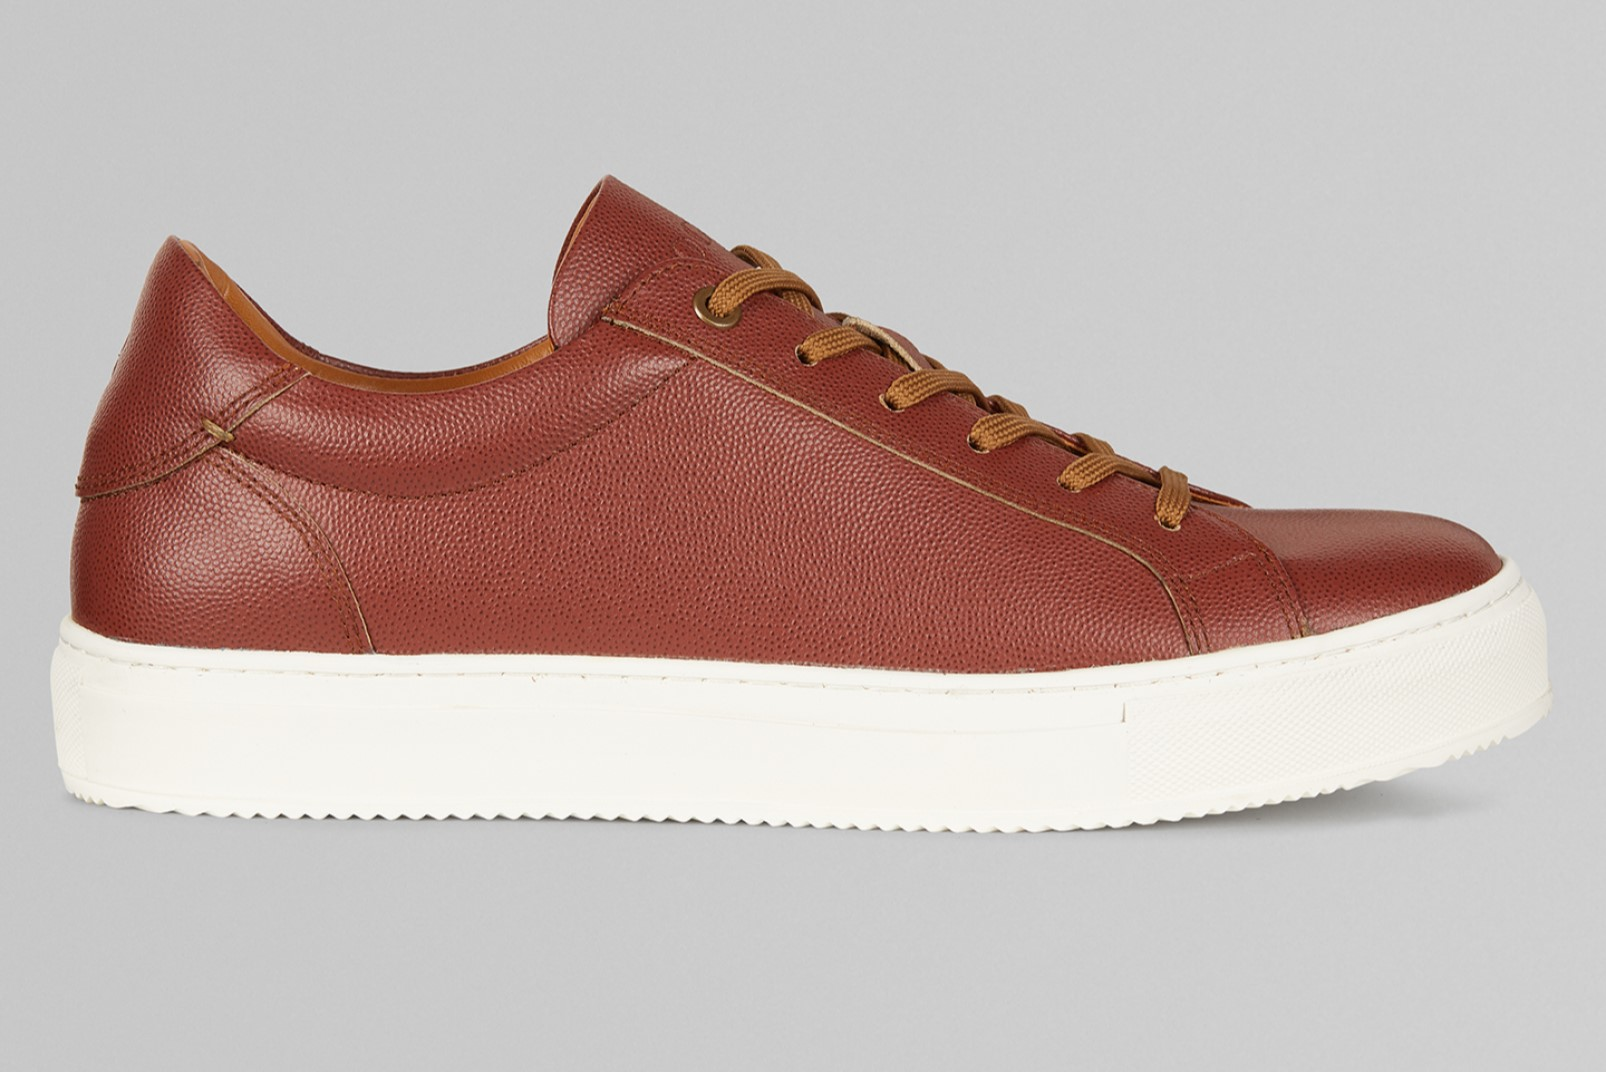 Sneakers in caviar leather